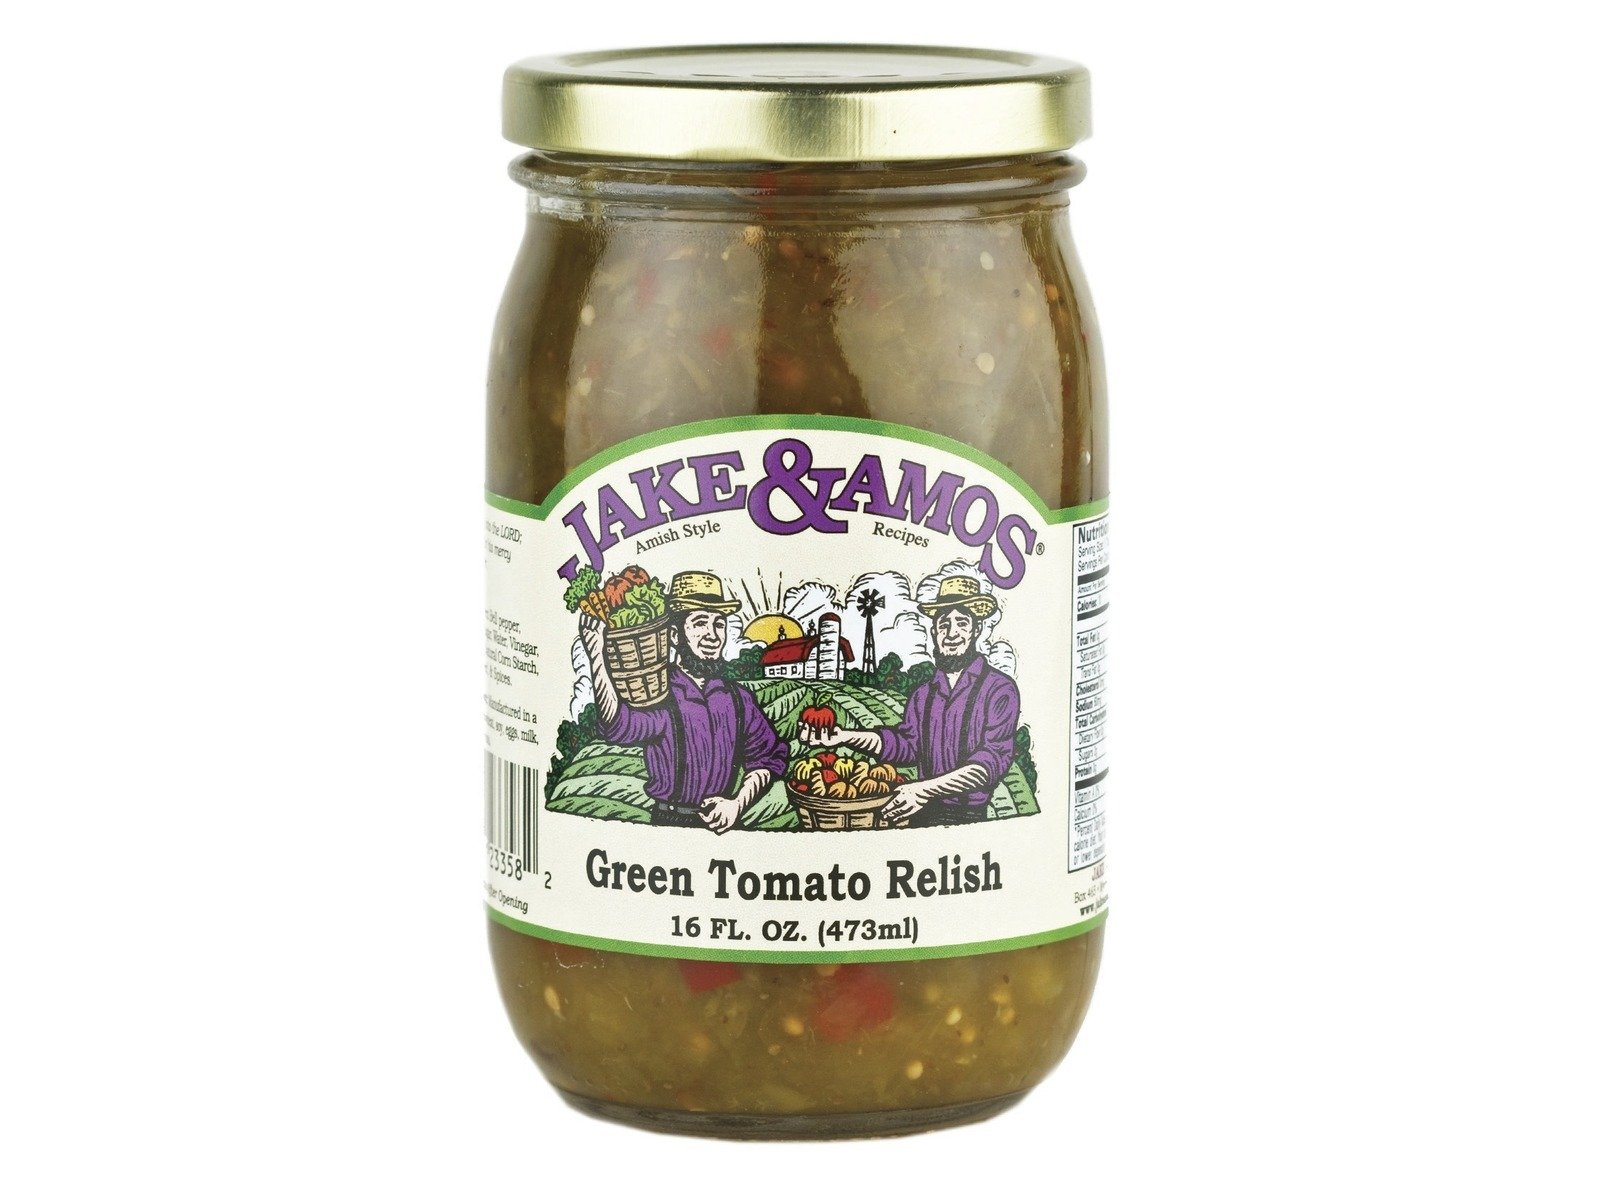 Jake & Amos Green Tomato Relish, 16 Ounce - 3 Pack